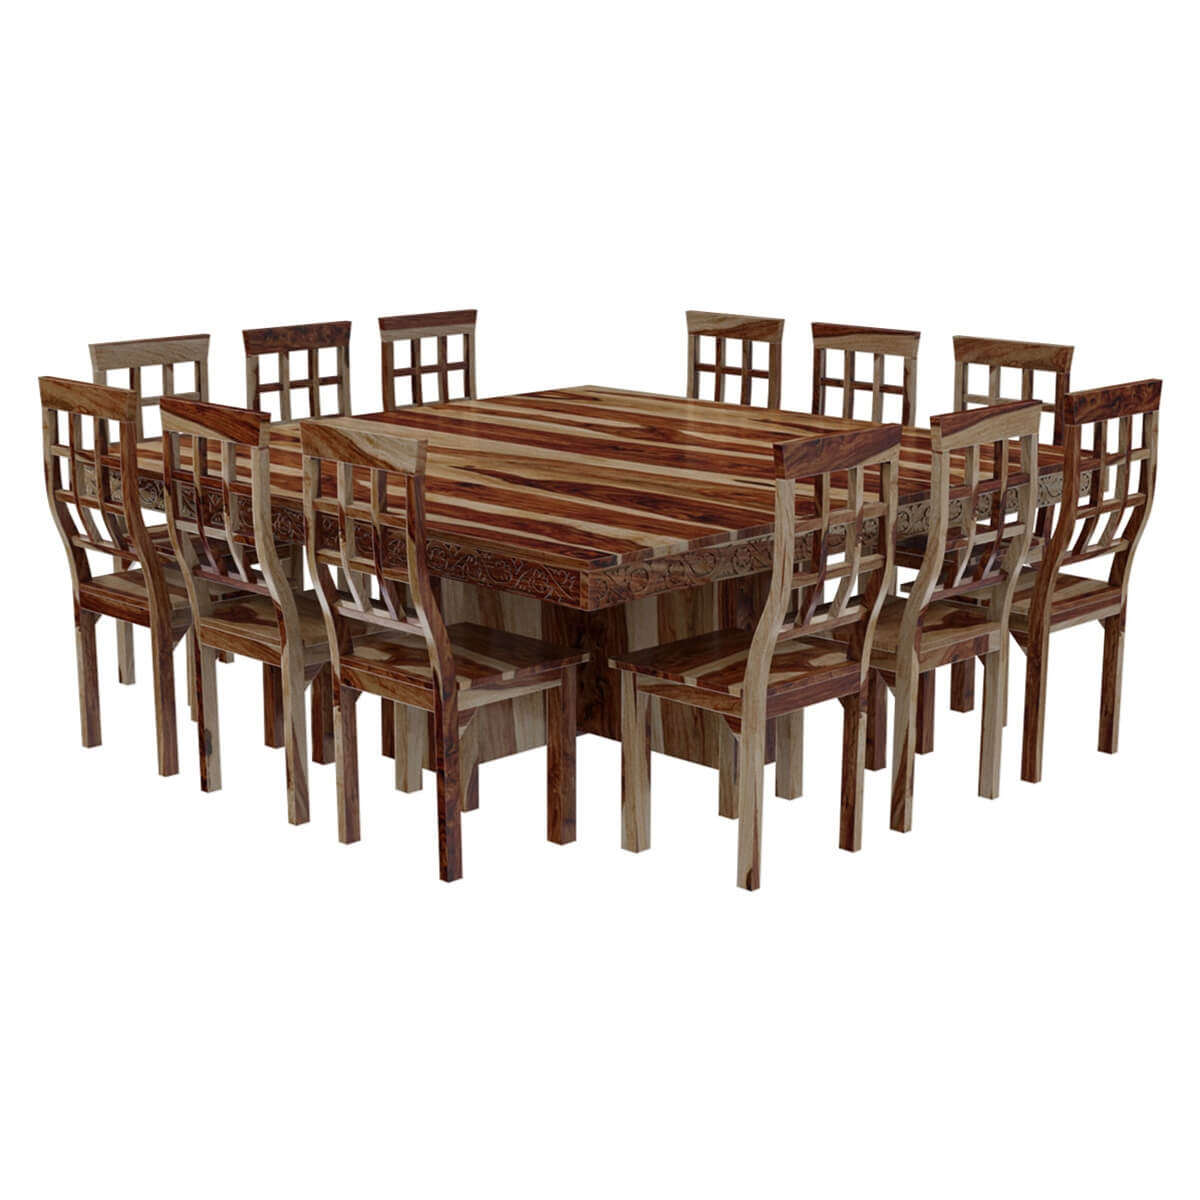 Esstisch Quadratisch 8 Personen Dallas Ranch Large Square Dining Room Table And Chair Set